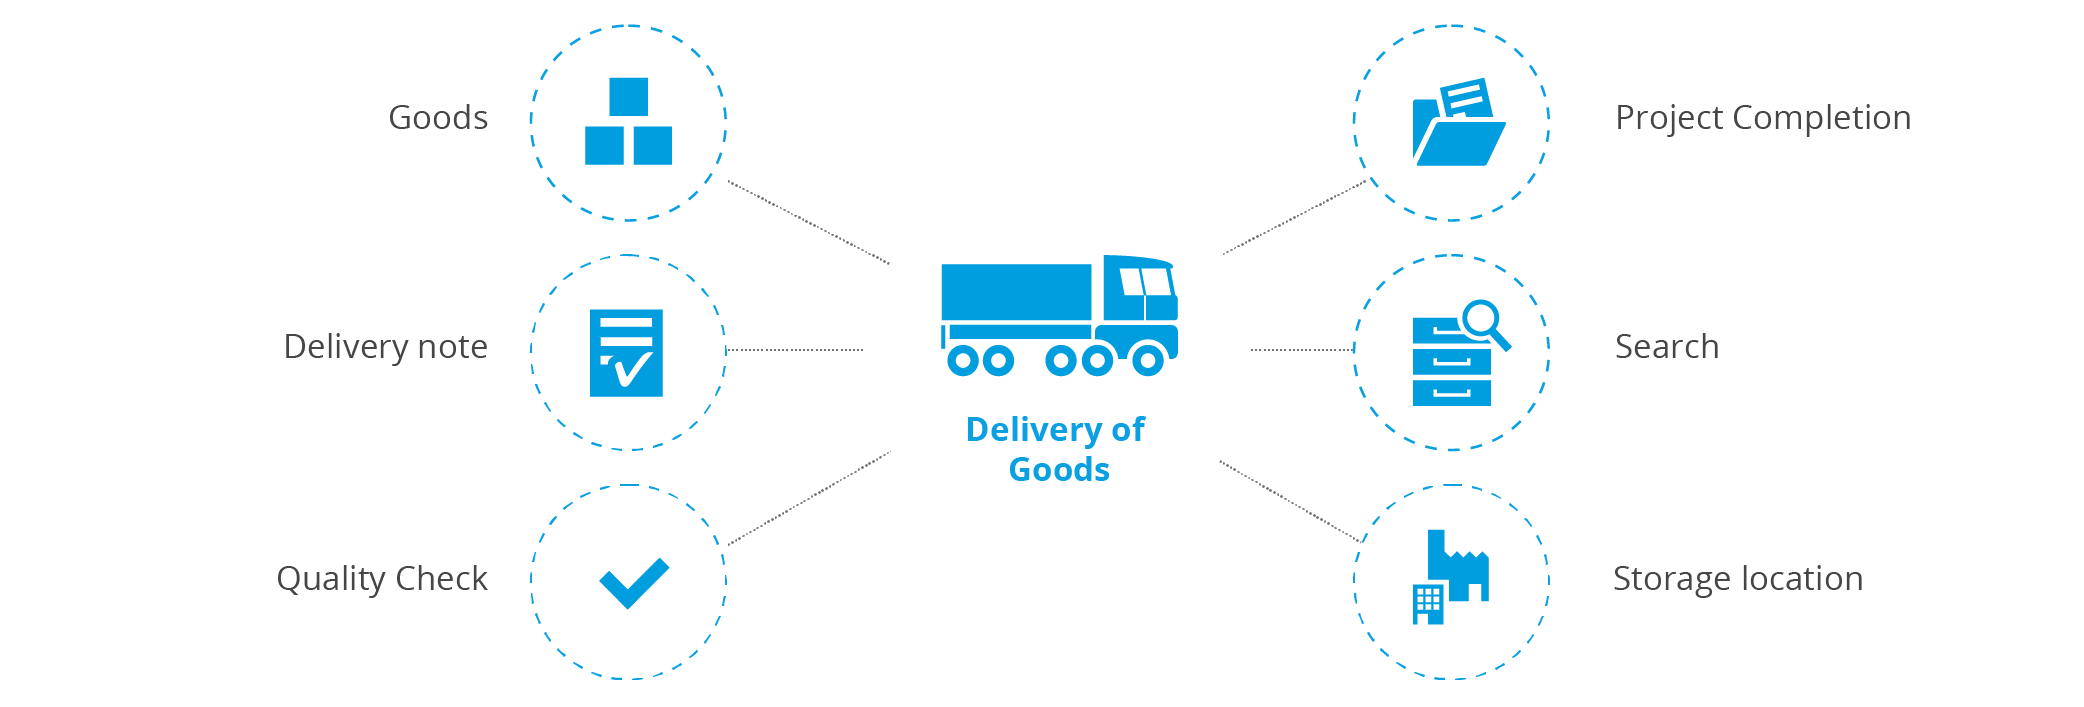 Procurement process - delivery of goods